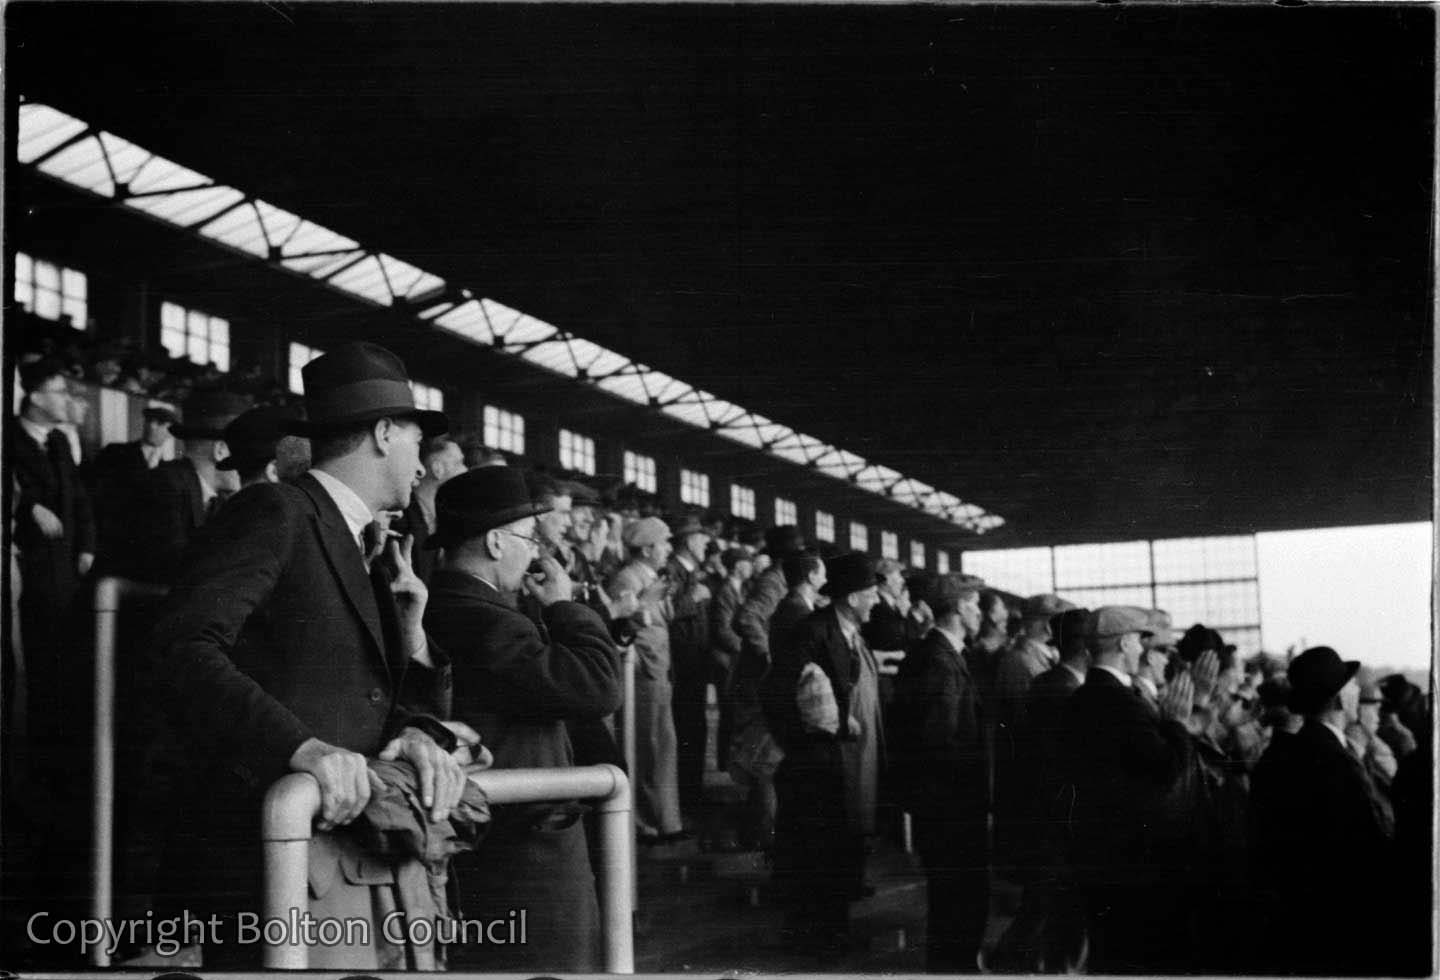 Spectators watch Bolton Wanderers reserve team play at Burnden Park